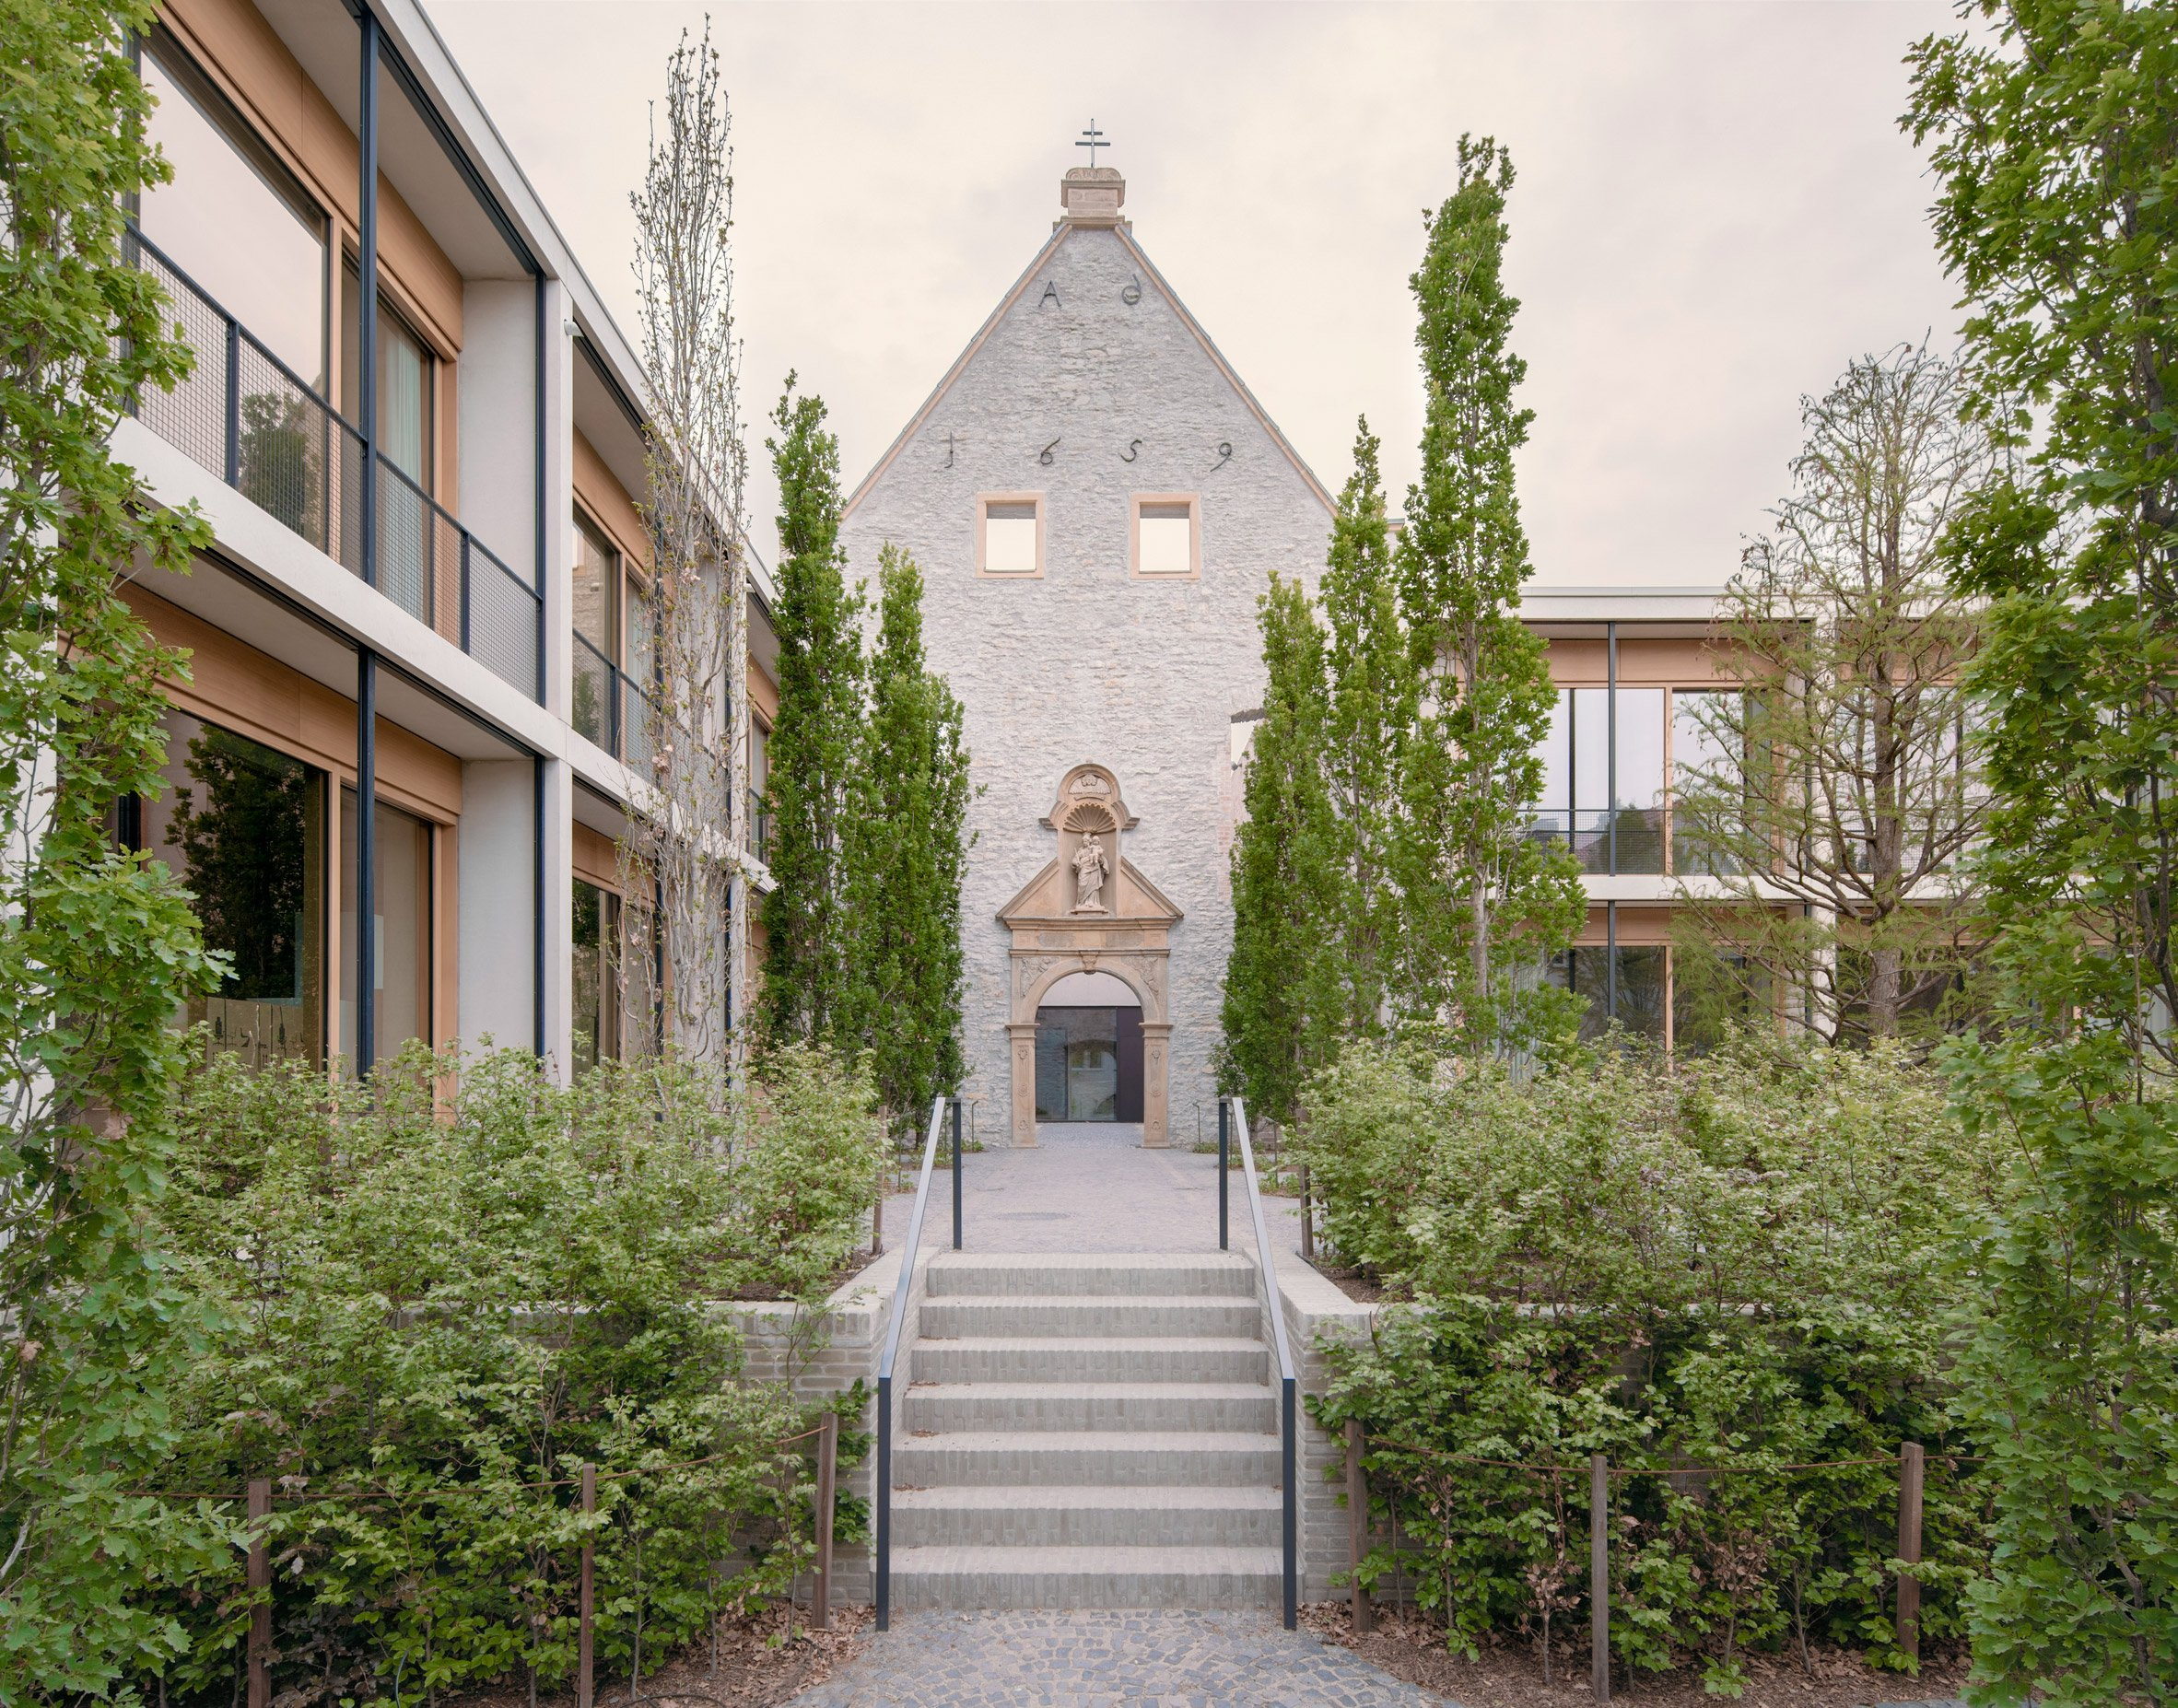 Chapel facade at Jacoby Studios by David Chipperfield Architects